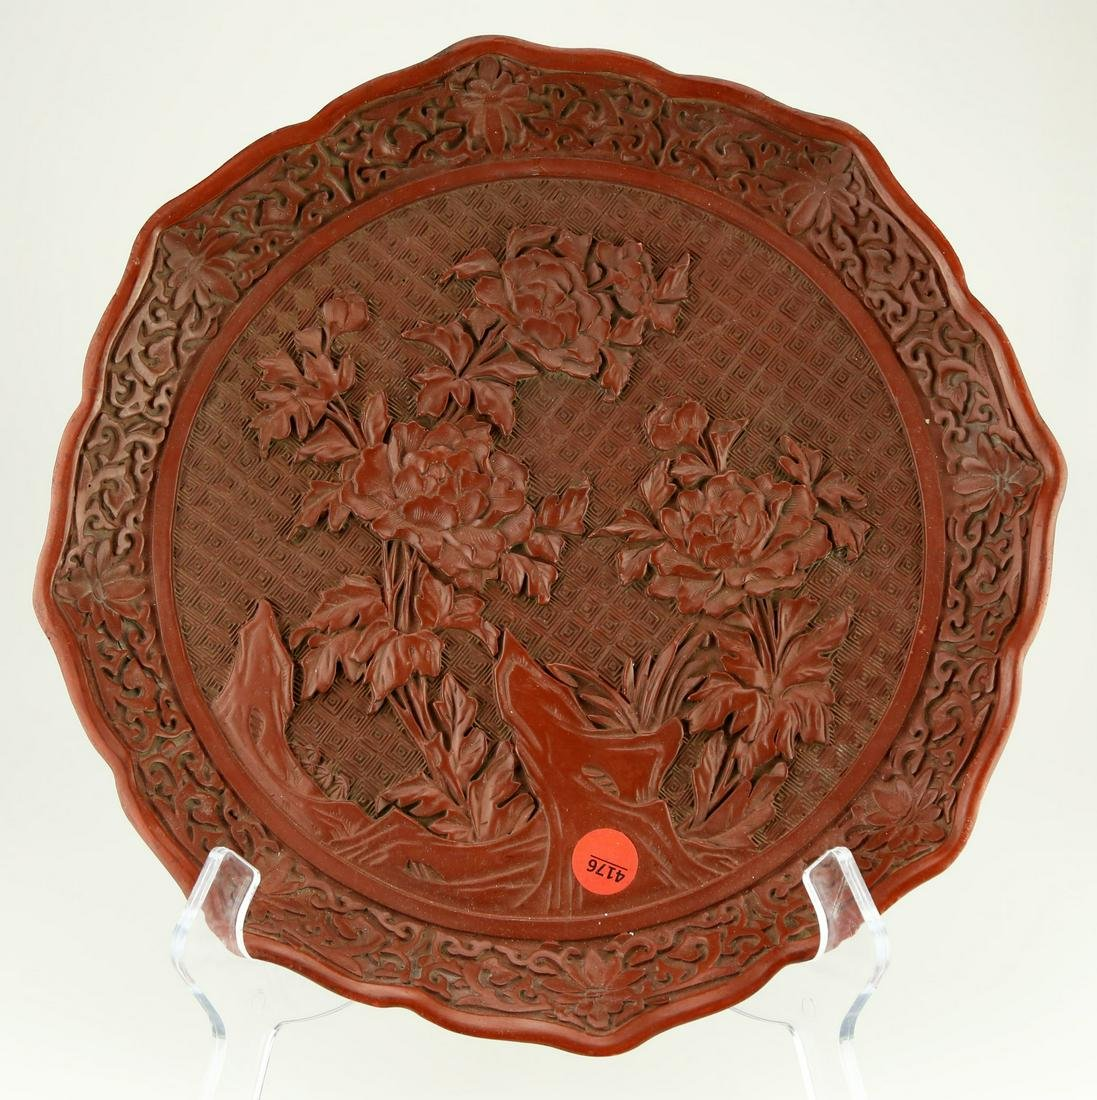 A CINNABAR LACQUER CARVED PLATE. THE BASE MARKED WITH